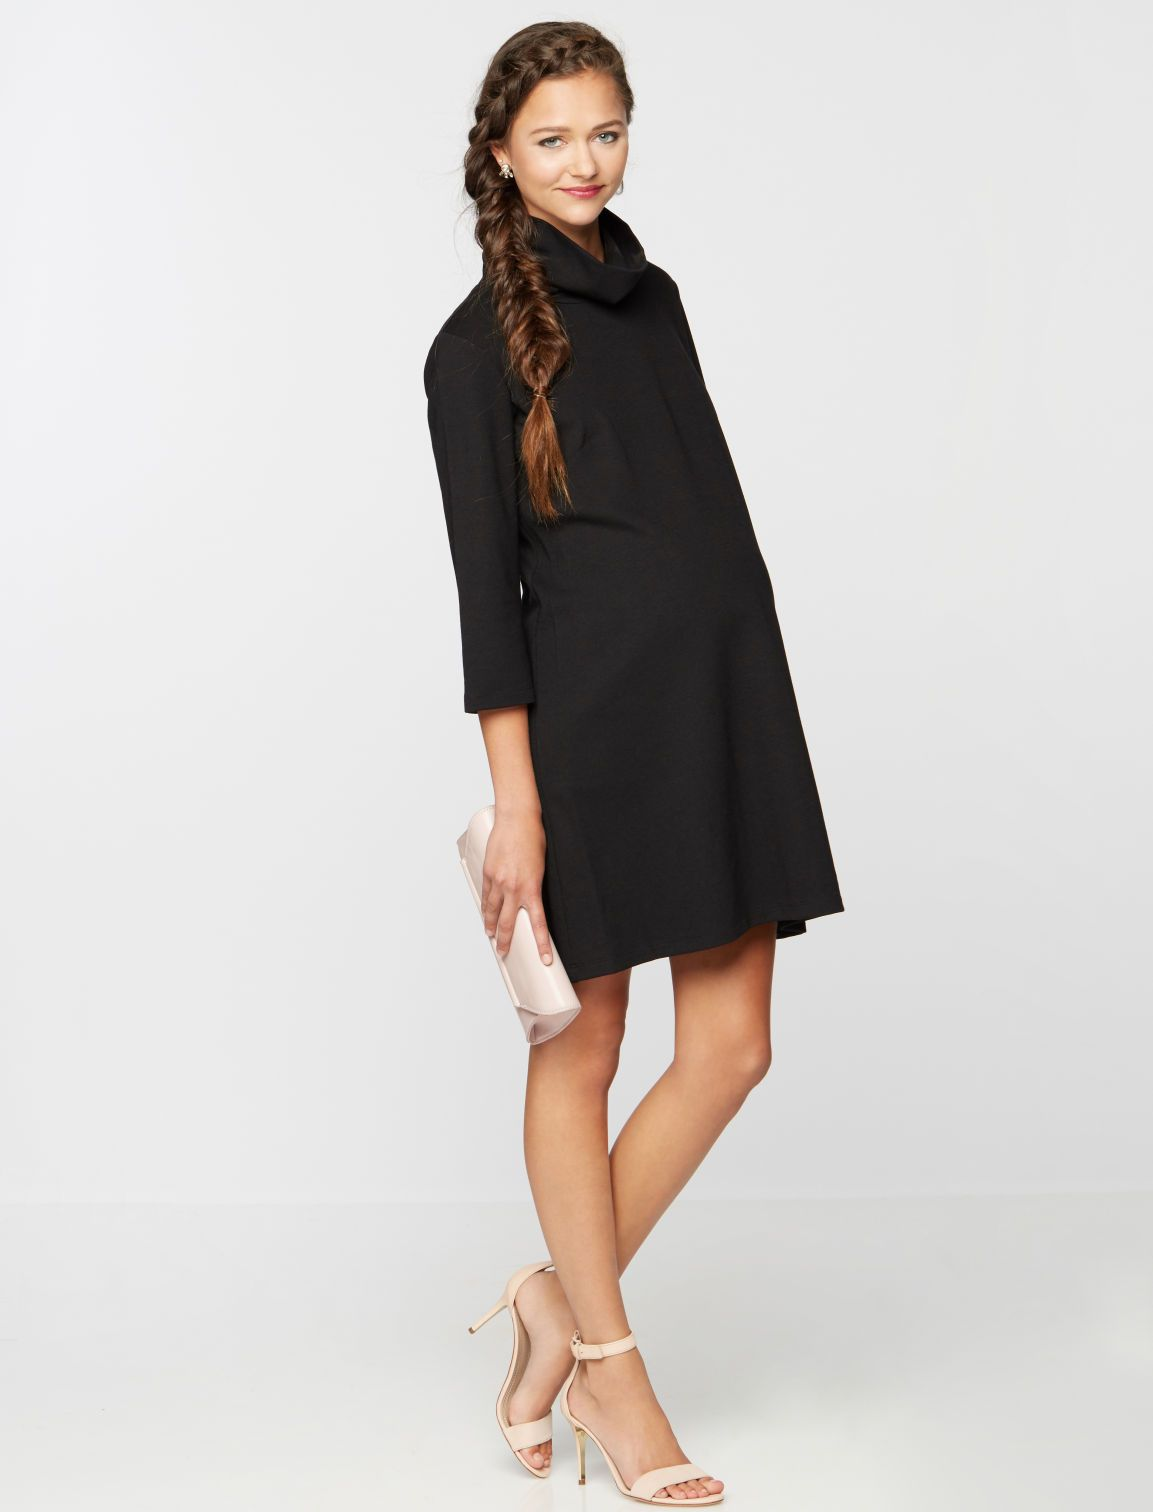 0d6684f0863c7 3/4 sleeve maternity dress by Isabella Oliver available at A Pea in the Pod  | Winter Maternity Essentials